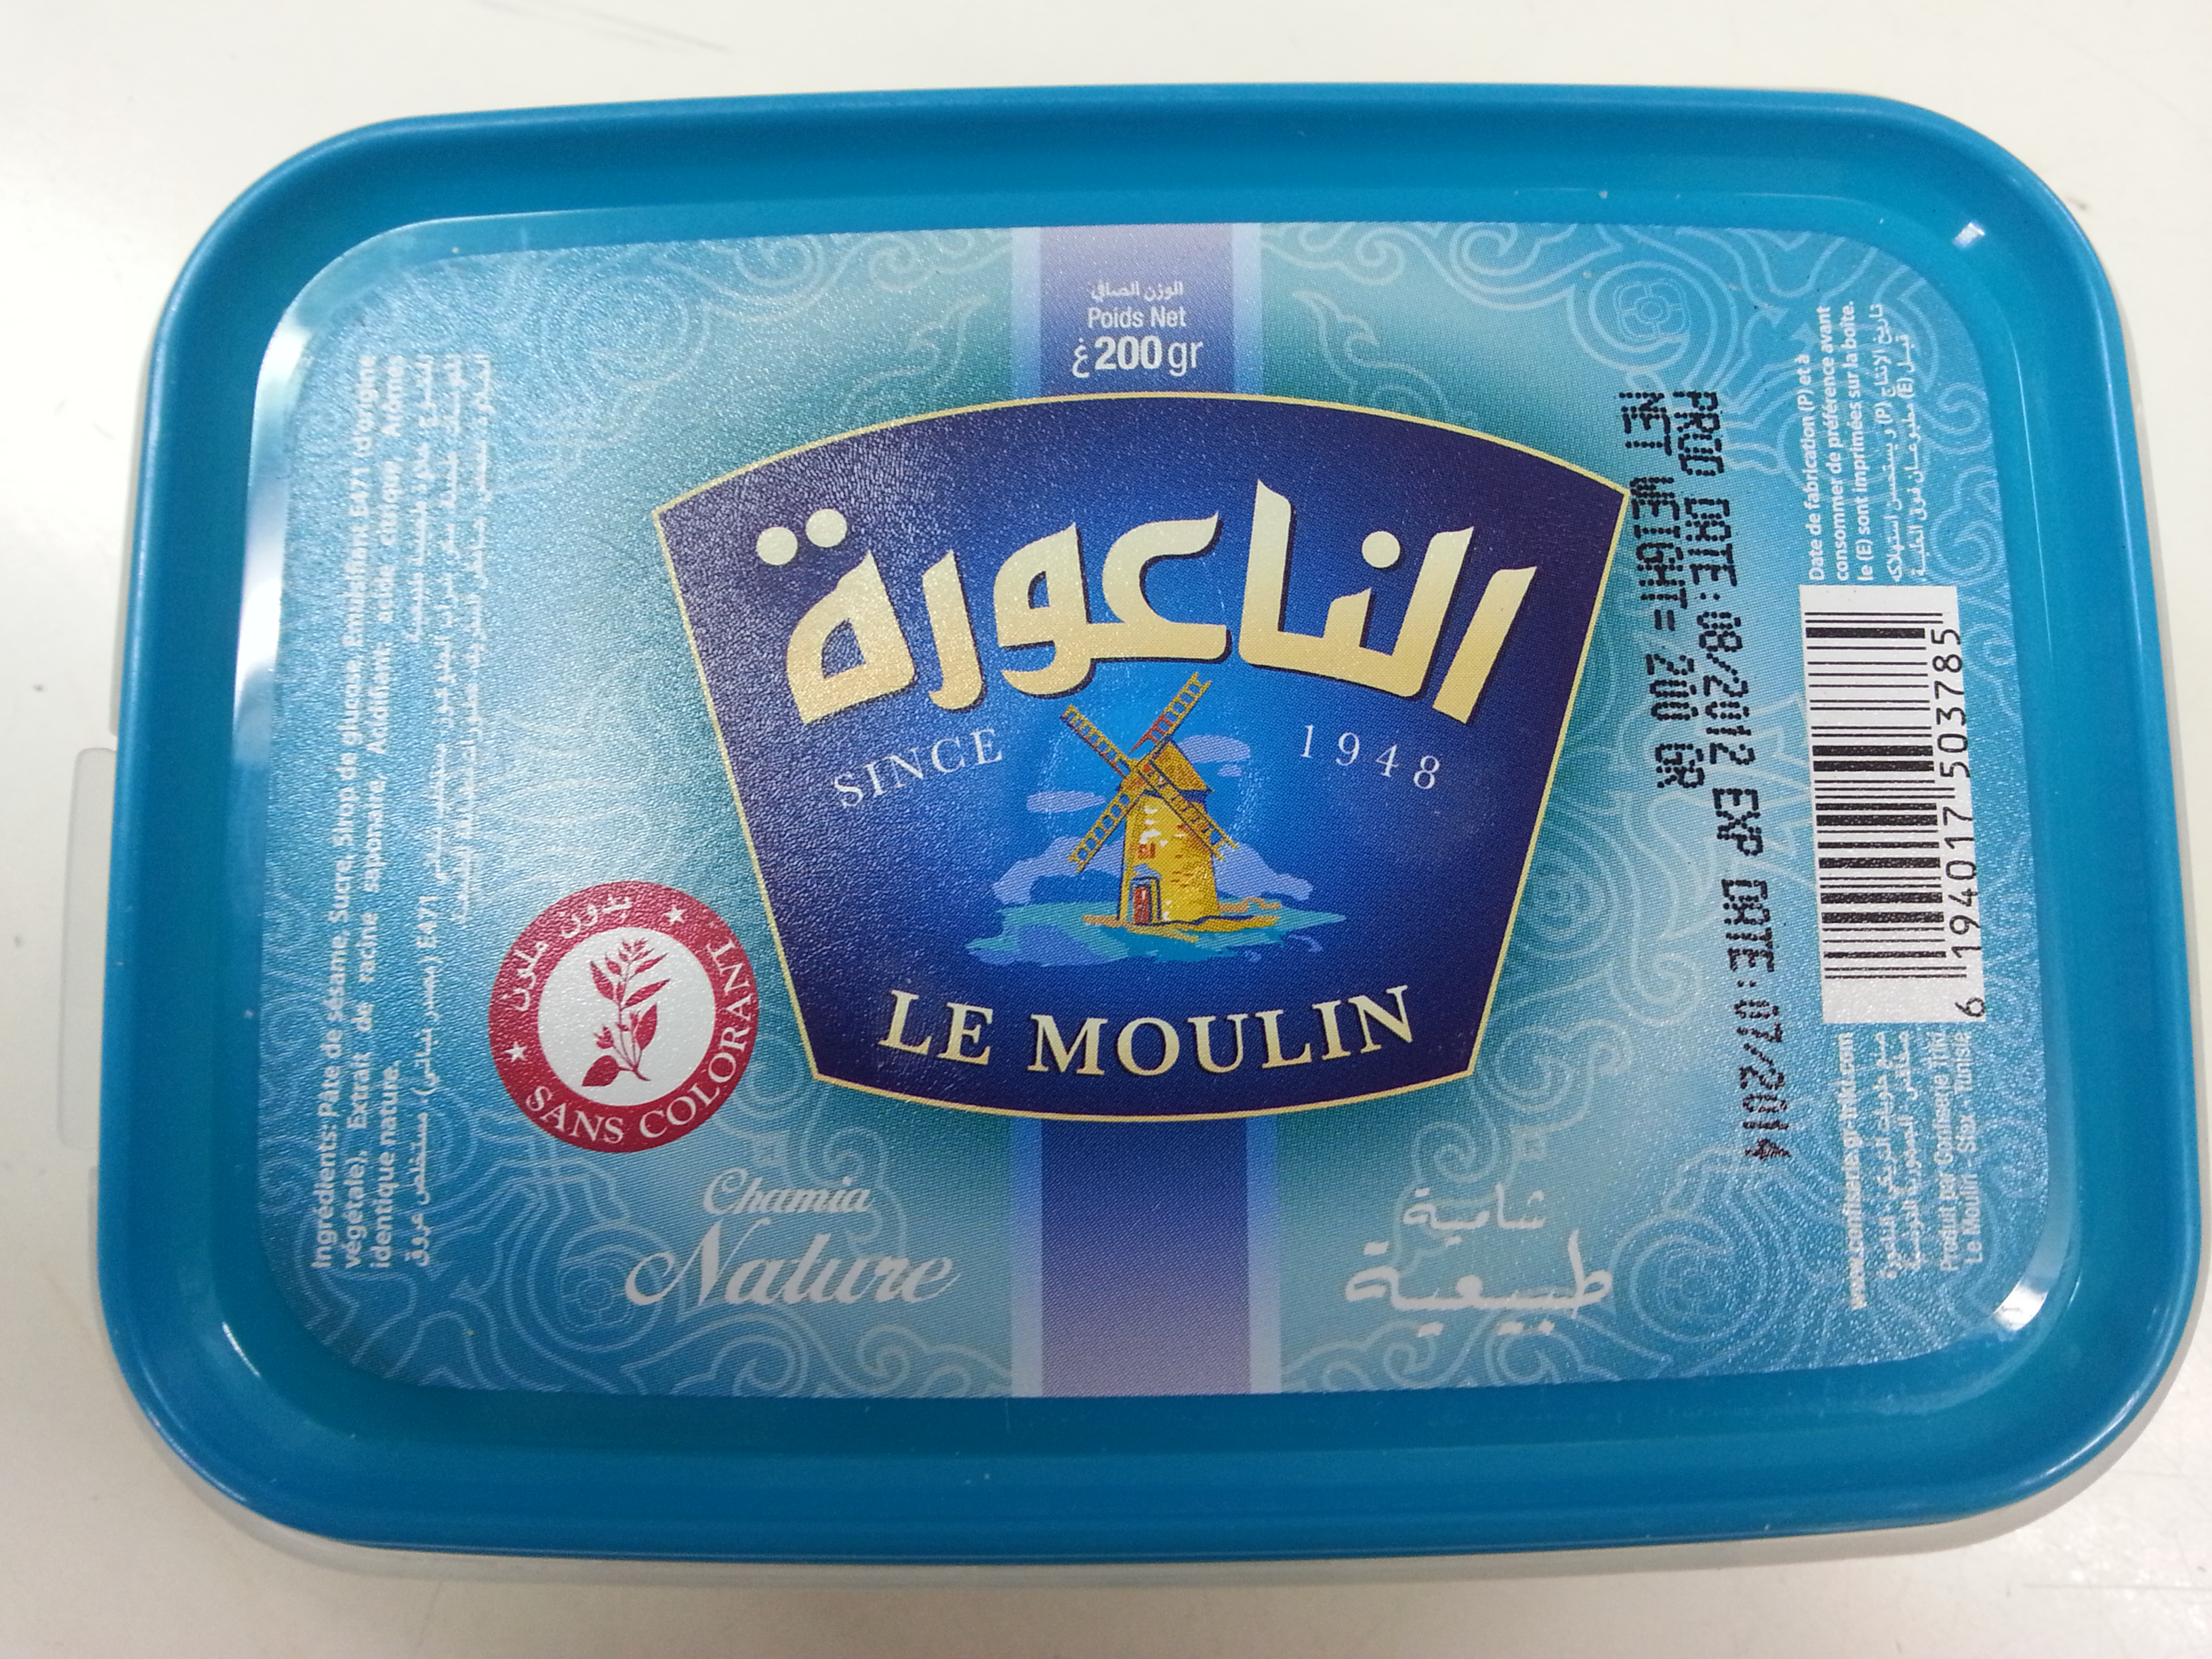 Le Moulin (Plain Halawa)